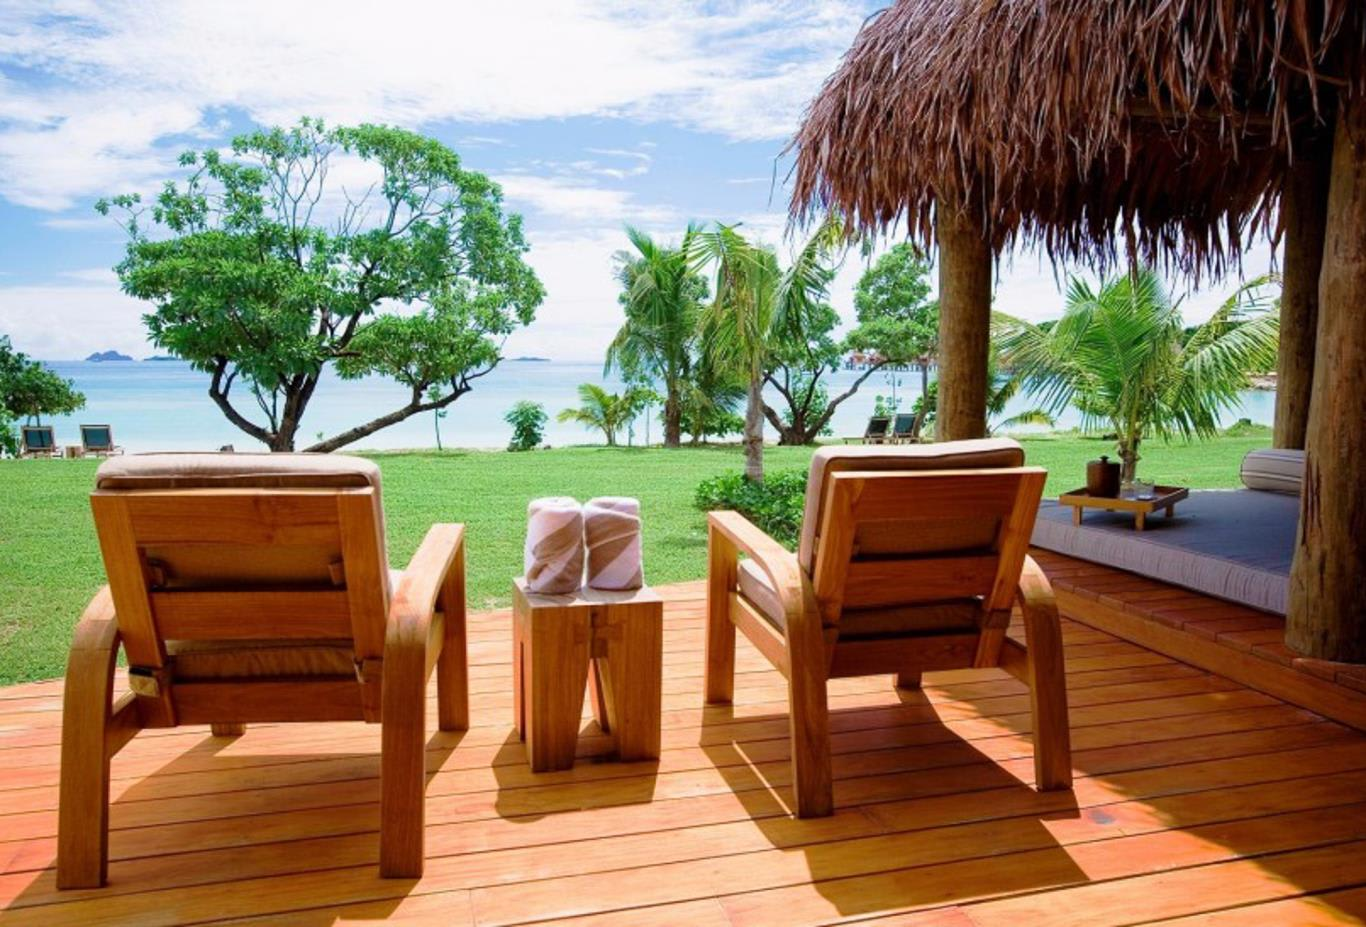 Beachfront Bure deck and daybed